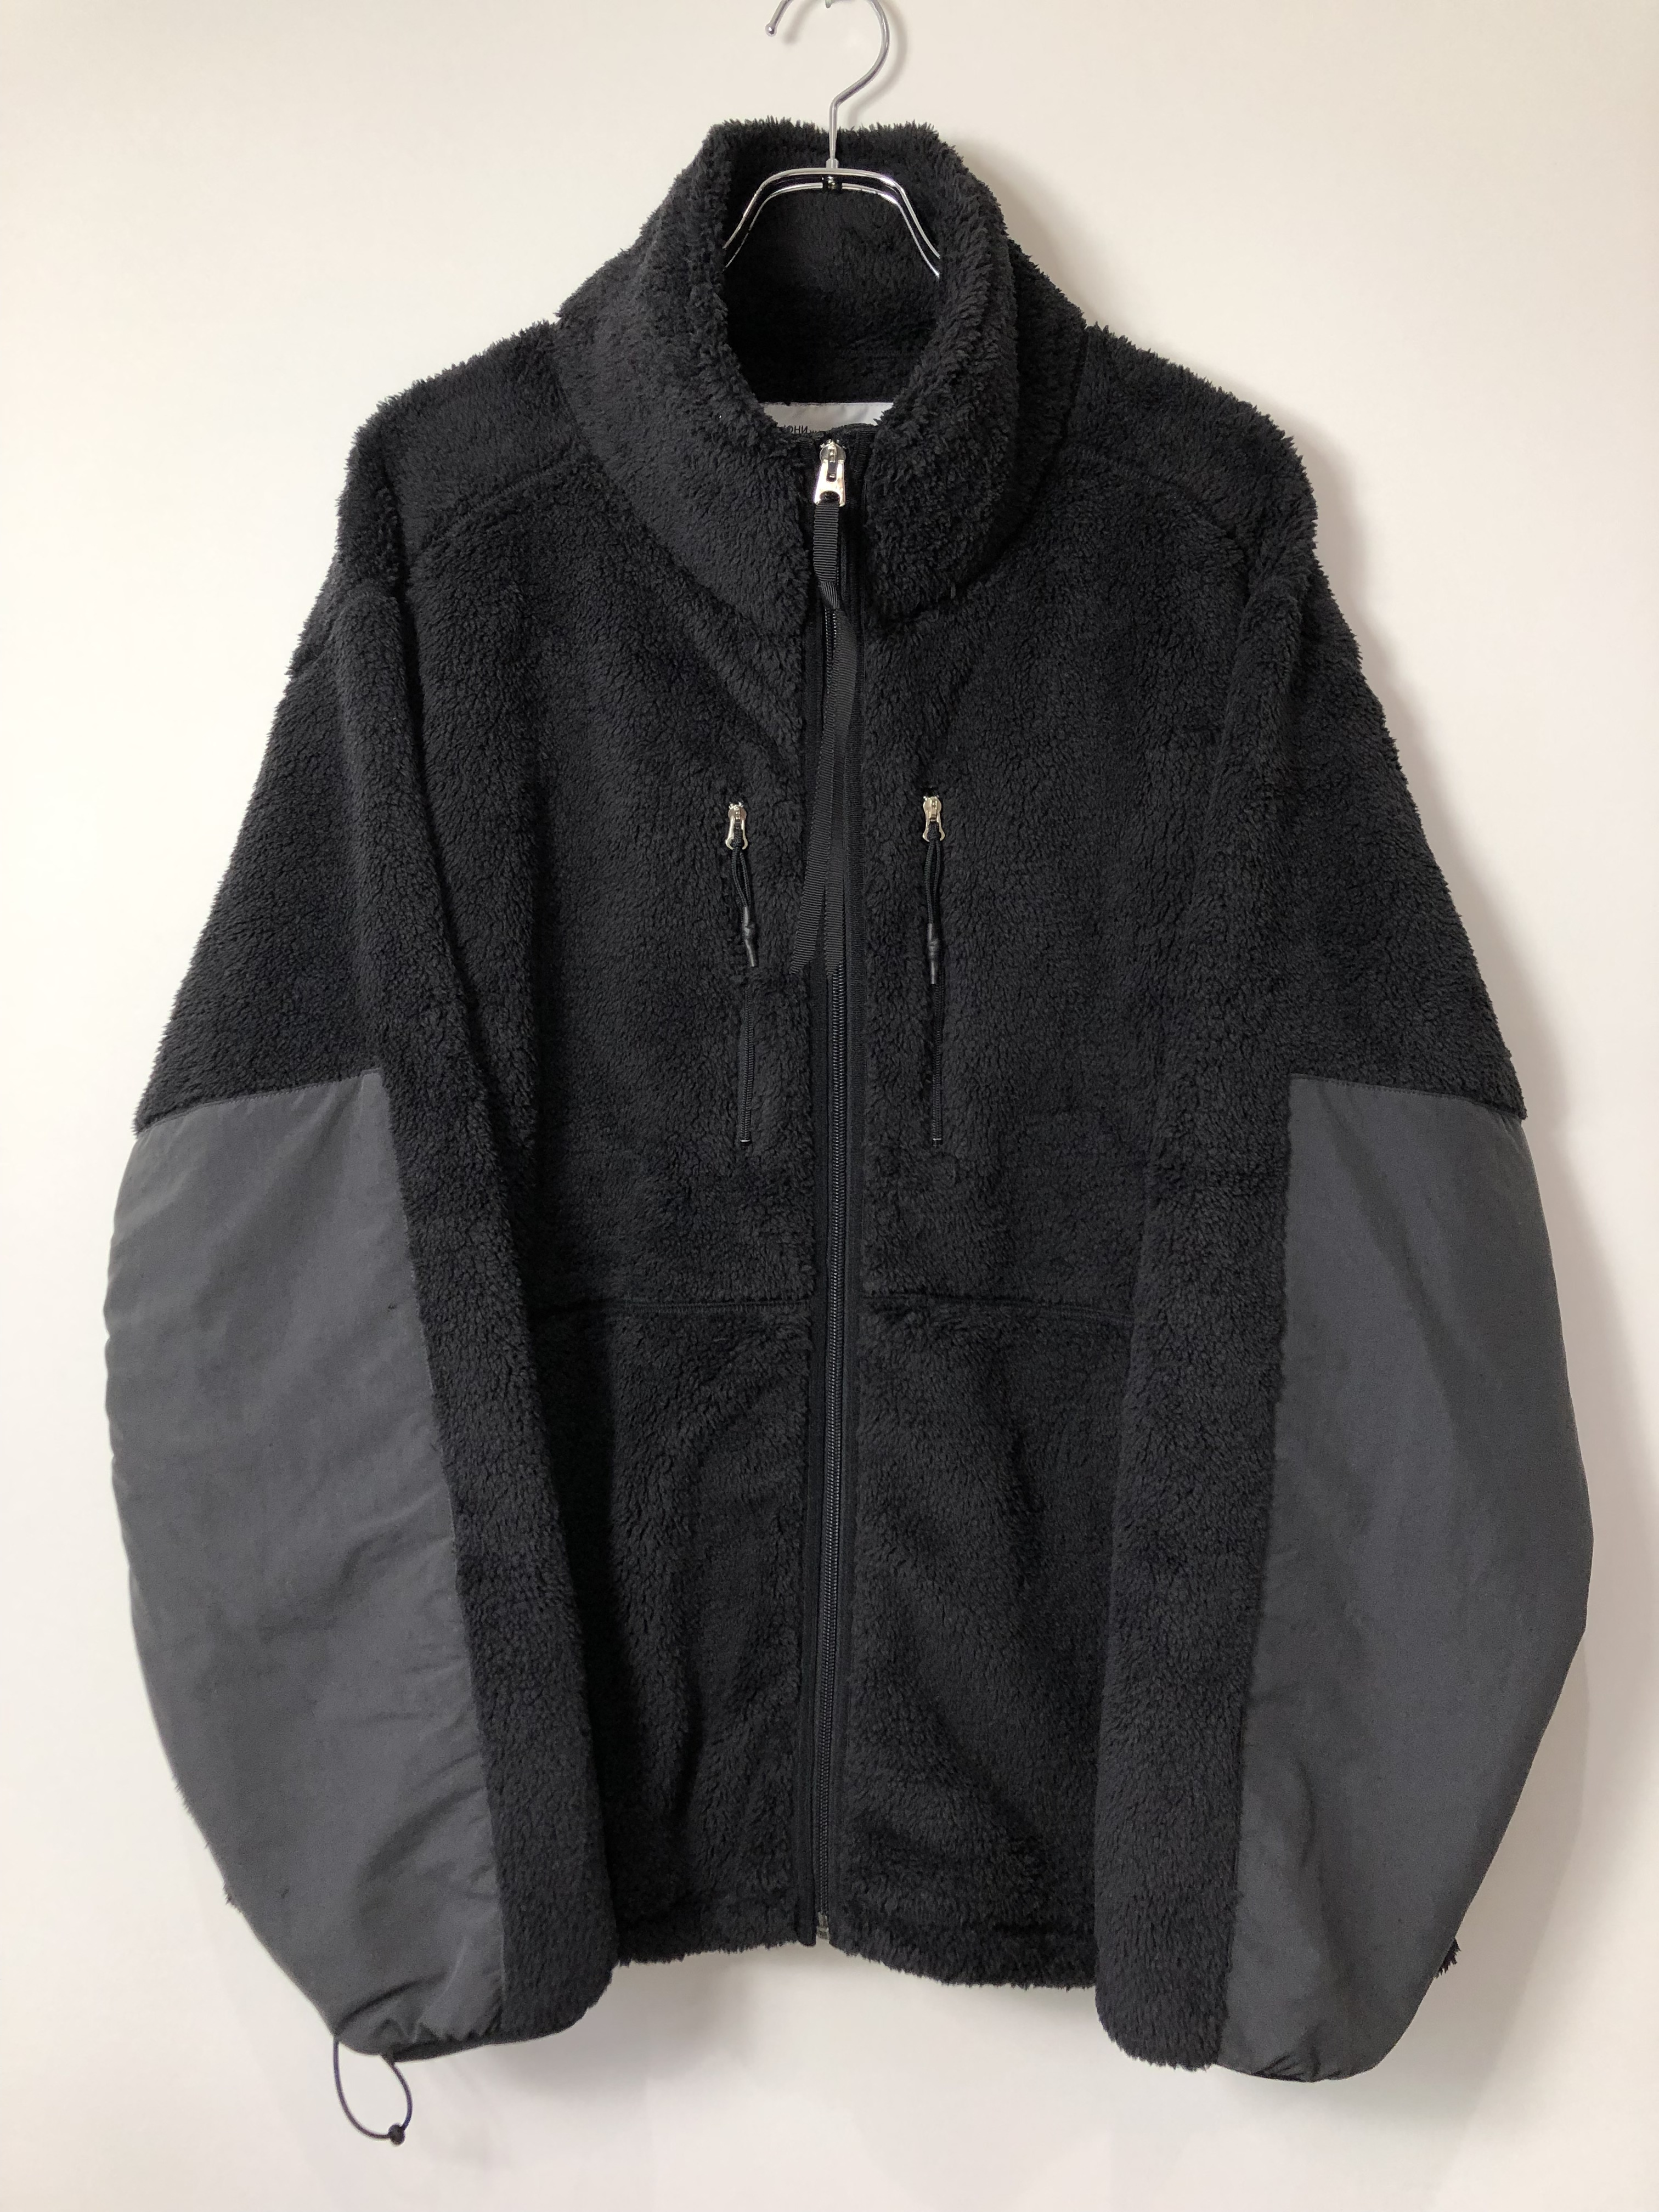 残り1着【JOHN MASON SMITH】ZIP UP FLEECE